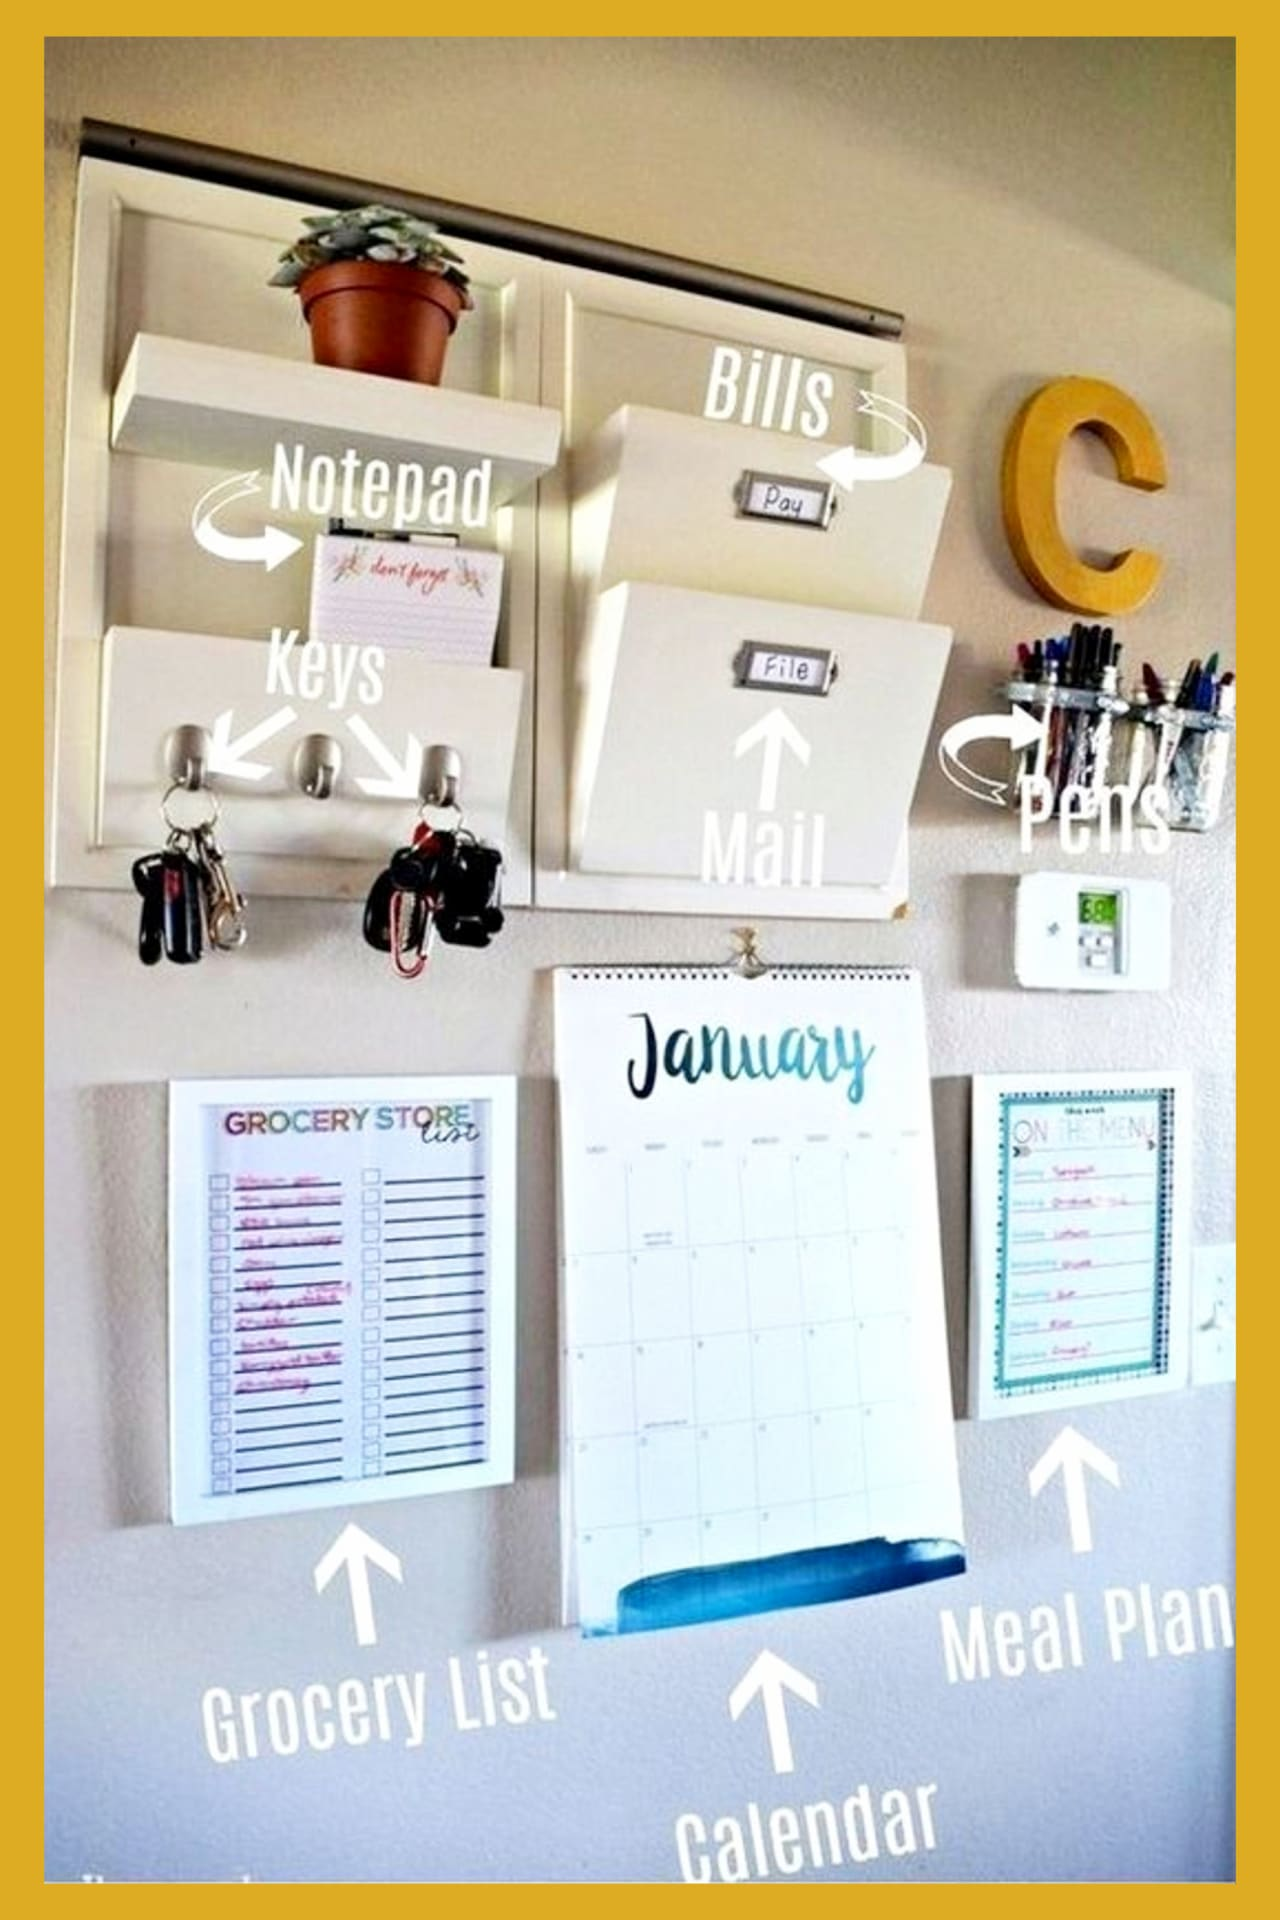 Organized mom hacks to organize like a pro! Organize with household items, dollar tree items and everyday objects - organize your family WITHOUT feeling overwhelmed! Simple family command center wall organization station